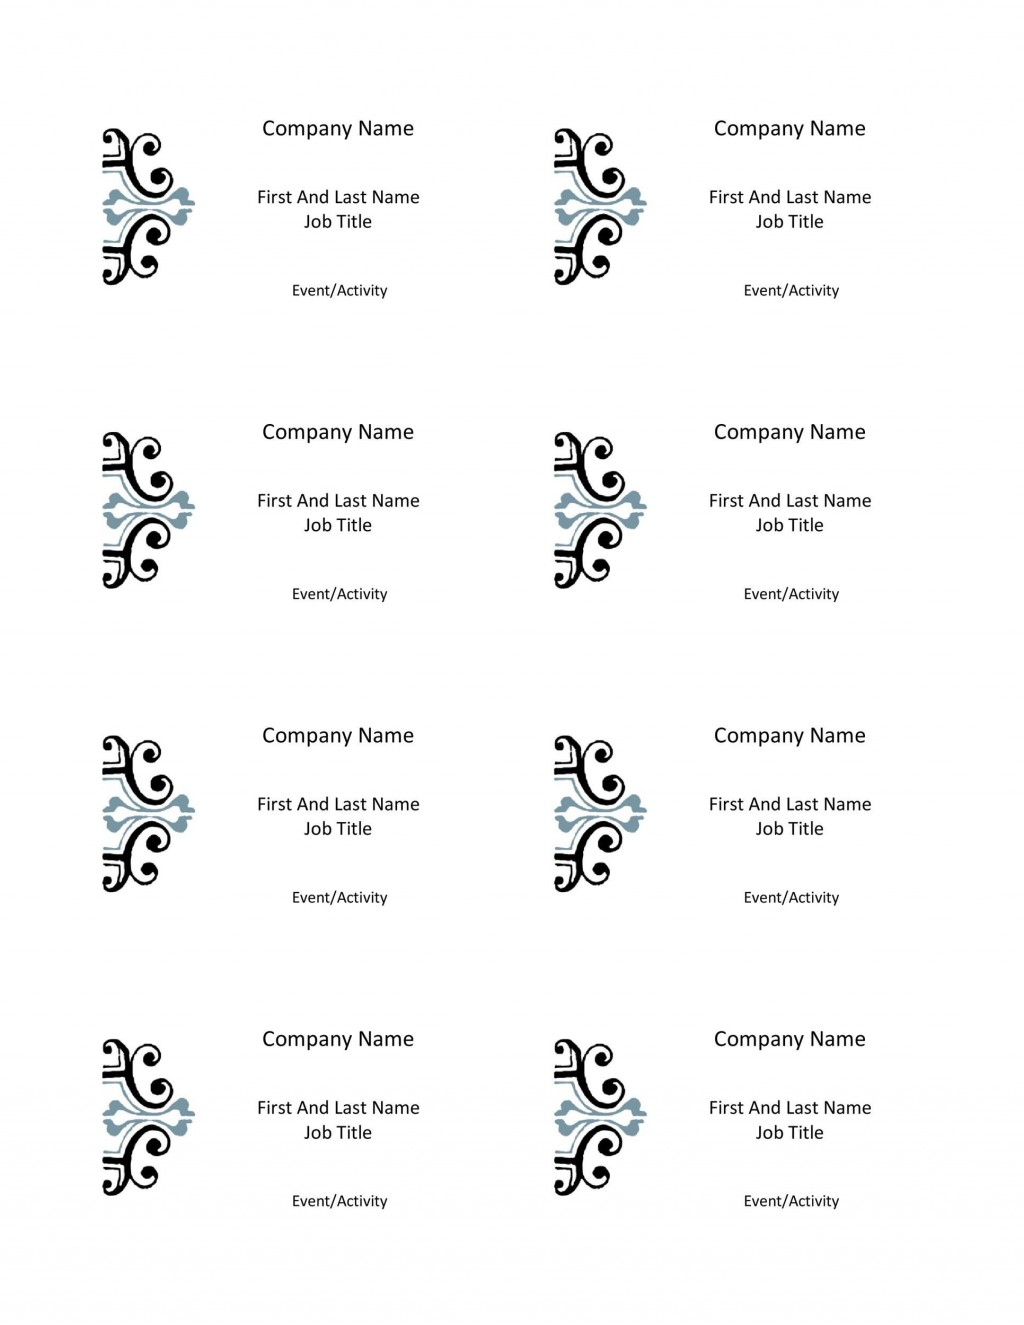 012 Dreaded Name Badge Template Word Concept  Free Download 2010 Avery 5392Large